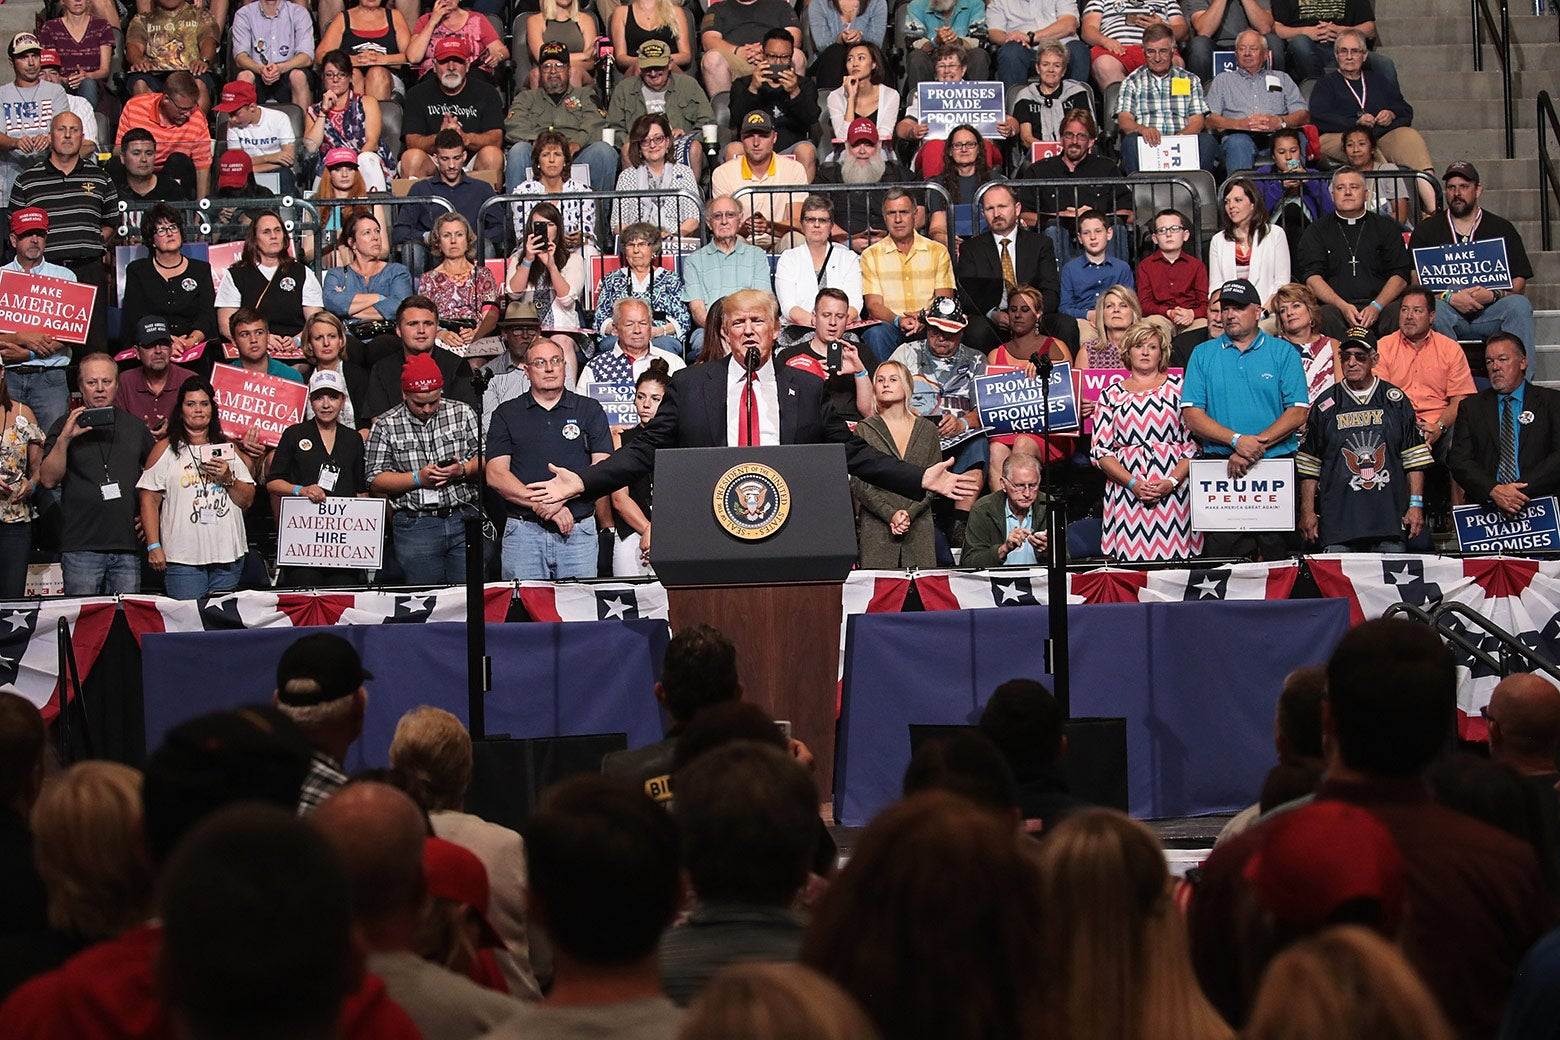 President Donald Trump speaks at a rally on June 21 in Cedar Rapids, Iowa. Trump spoke about renegotiating NAFTA and building a border wall that would produce solar power during the rally.